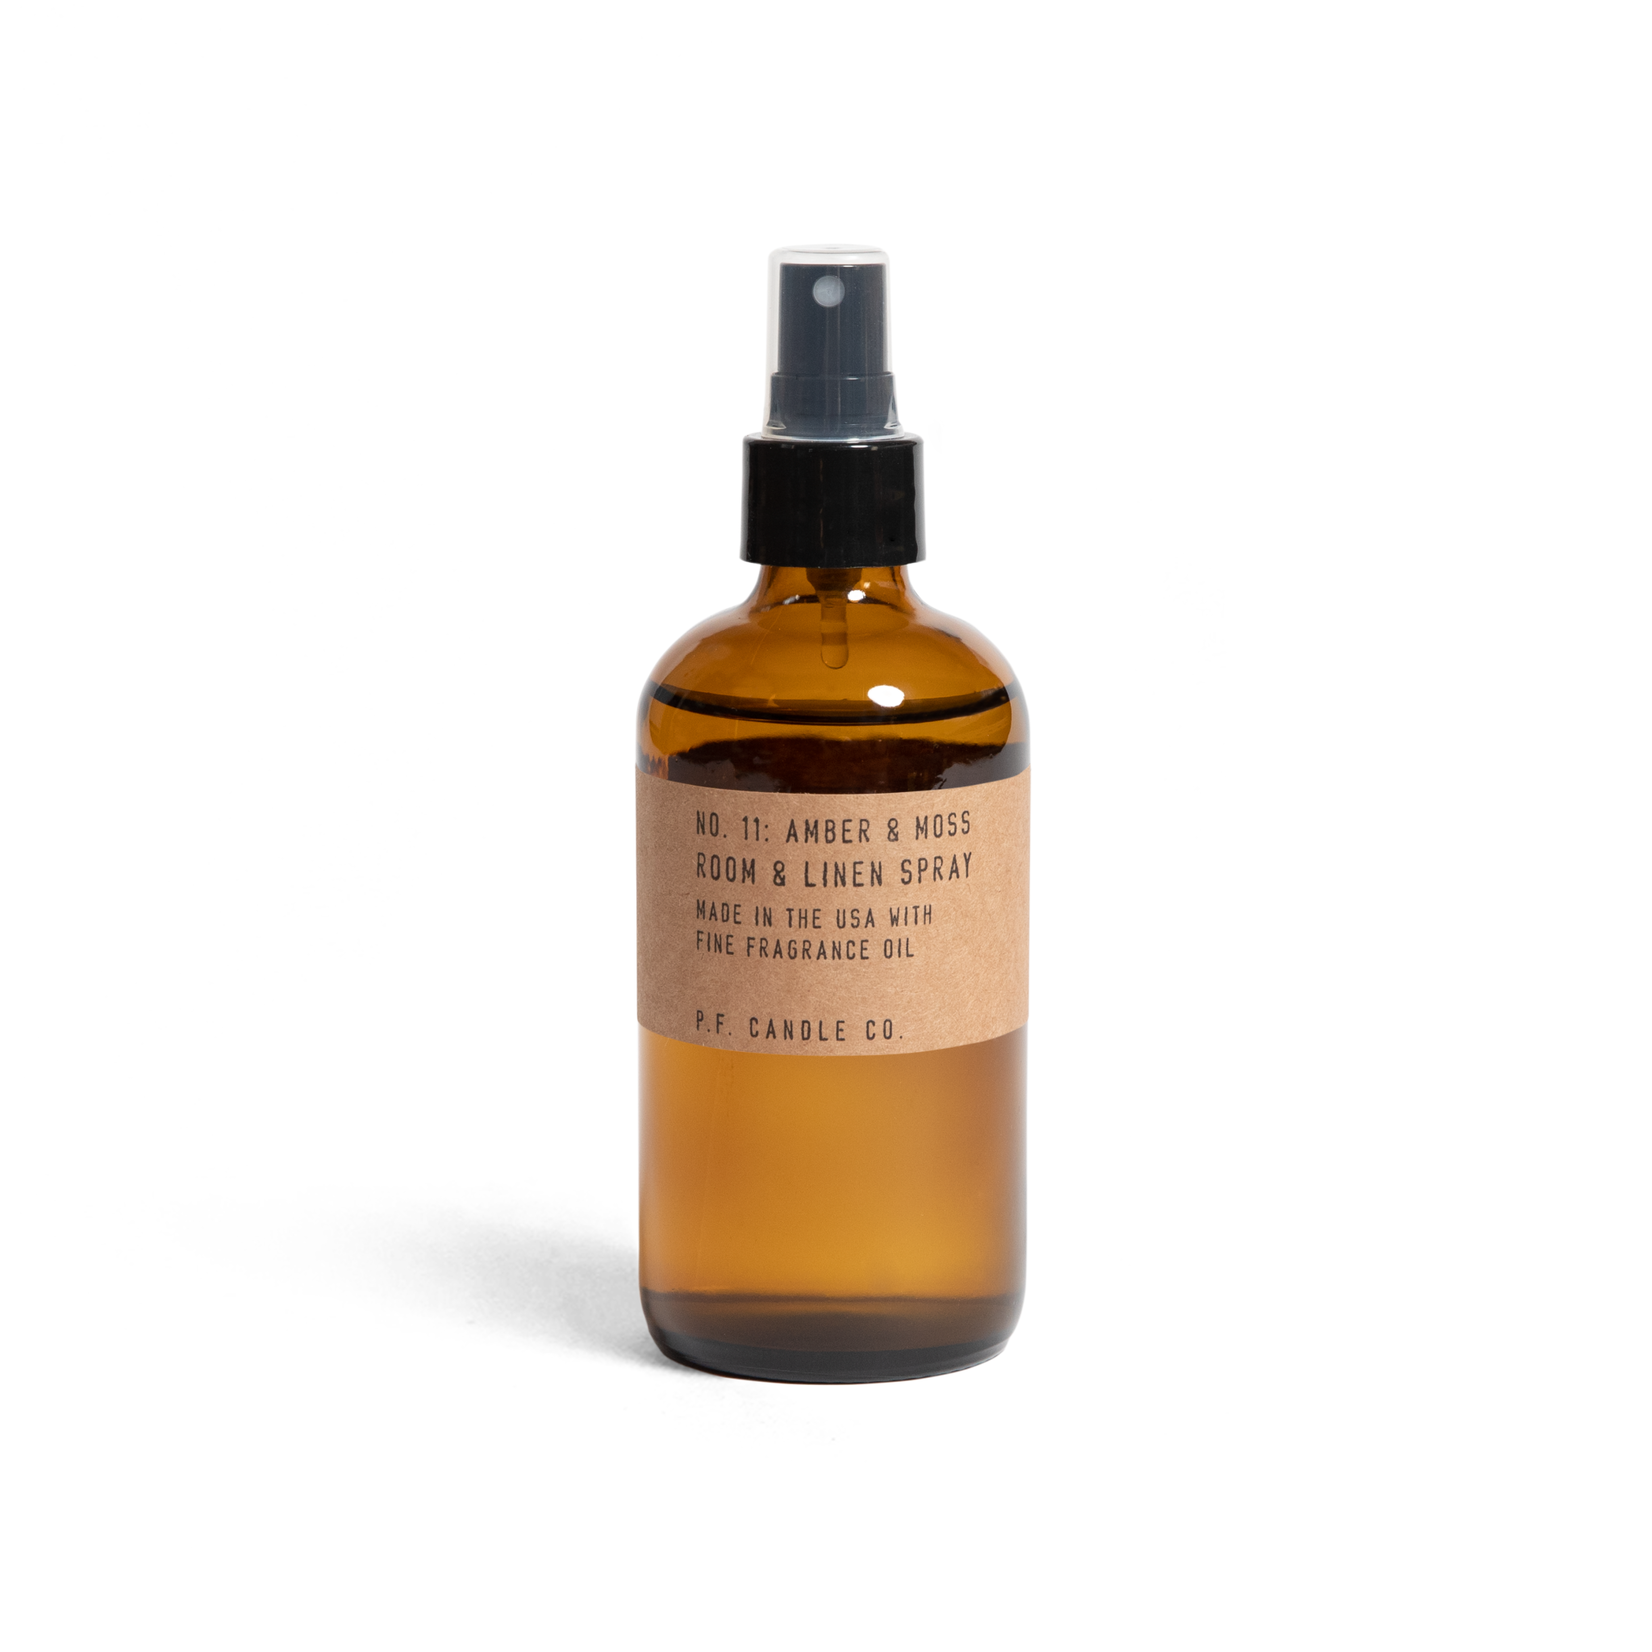 P.F. Candle Co. P.F. Candle  Amber & Moss Room Spray 7.75oz